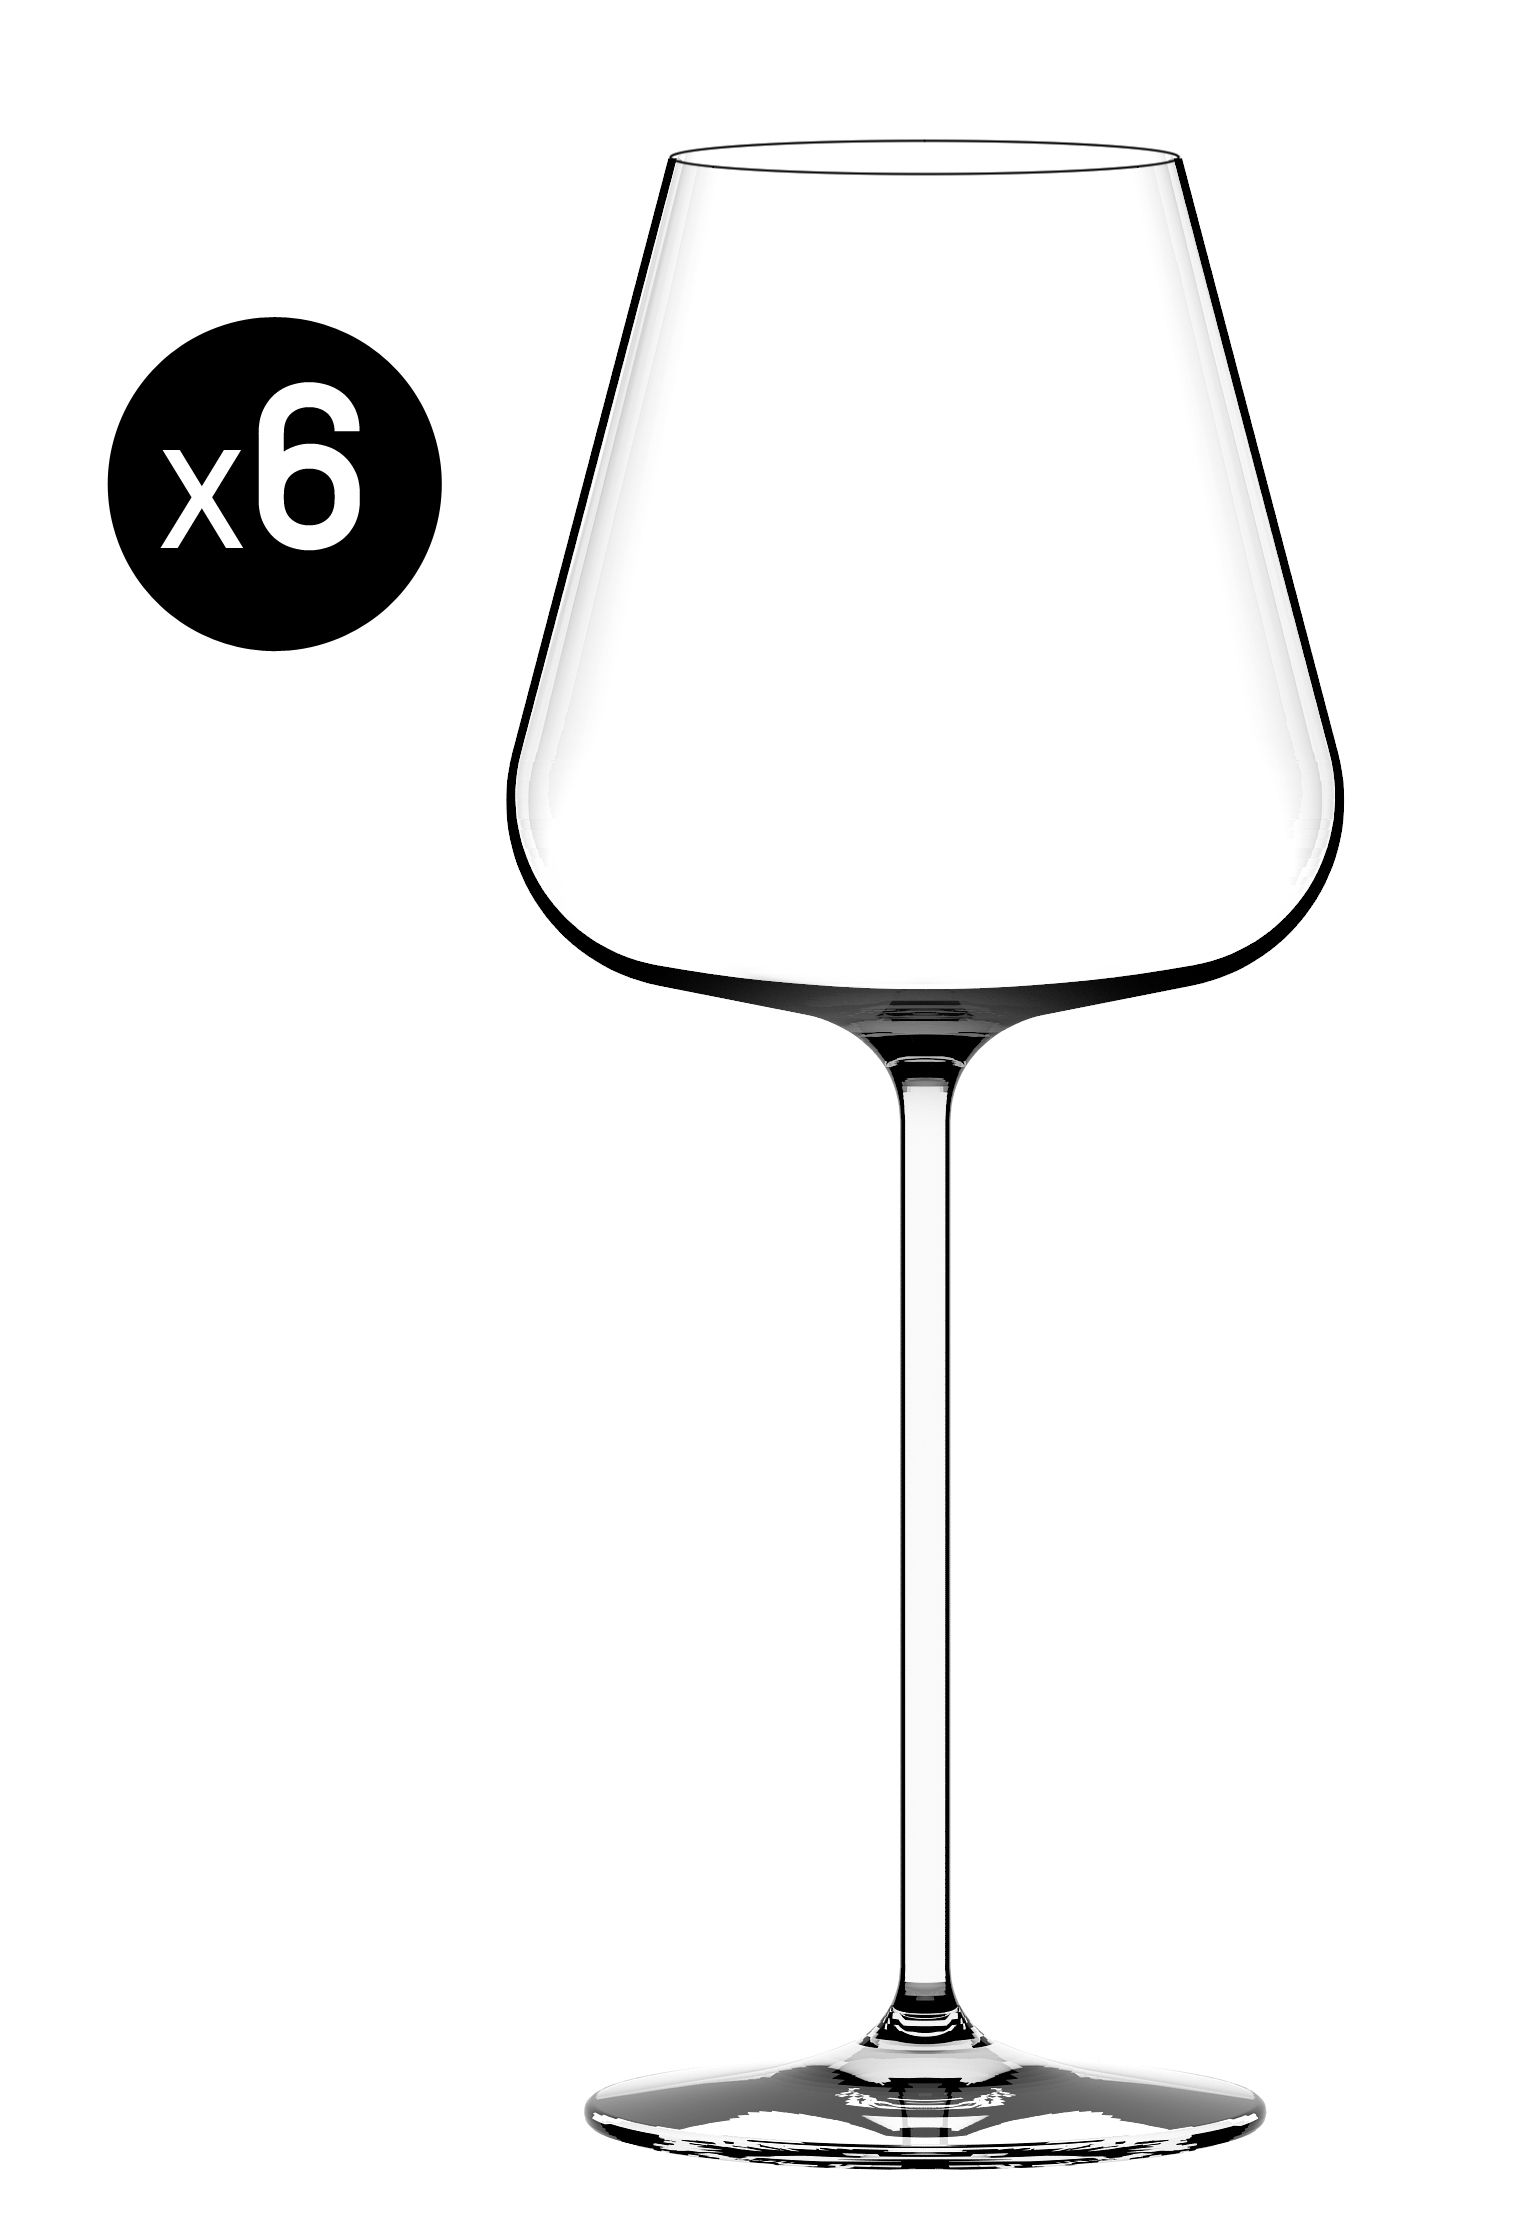 Tableware - Wine Glasses & Glassware - Sparkle Champagne glass - 48 cl - Set of 6 by Italesse - Transparent - 45 cl - Glass